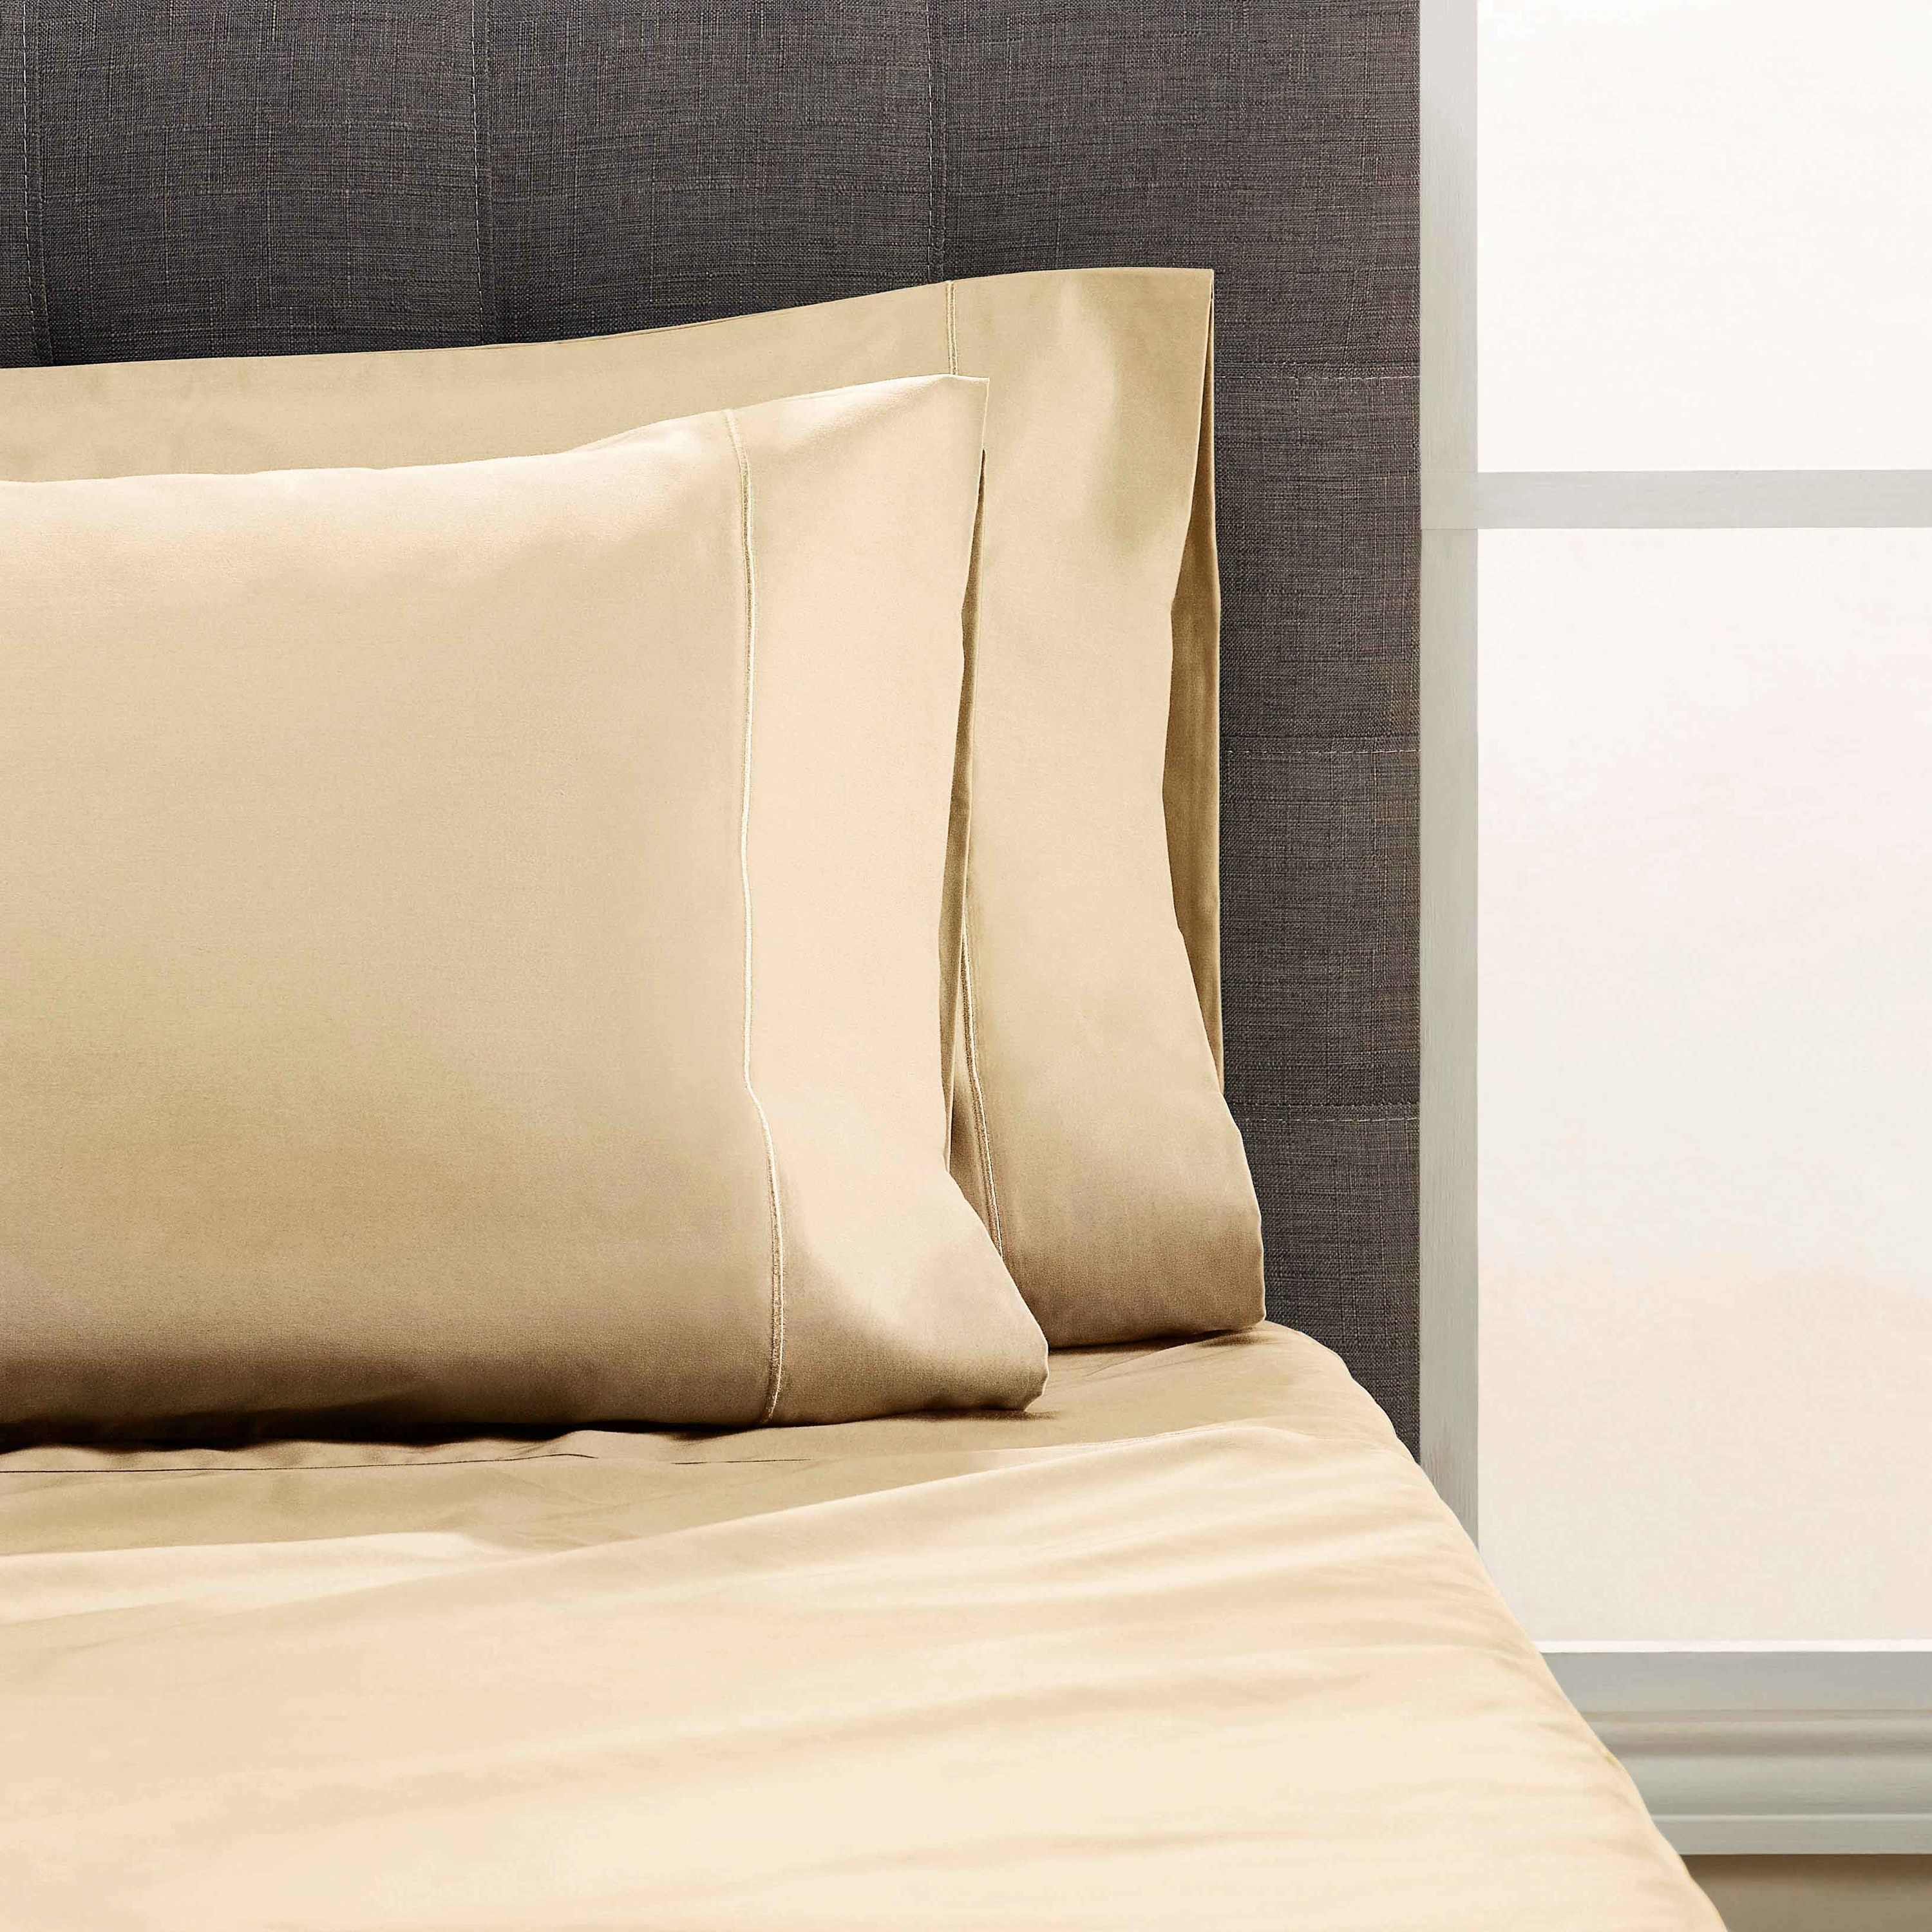 Peach sheets and pillow cases on bed